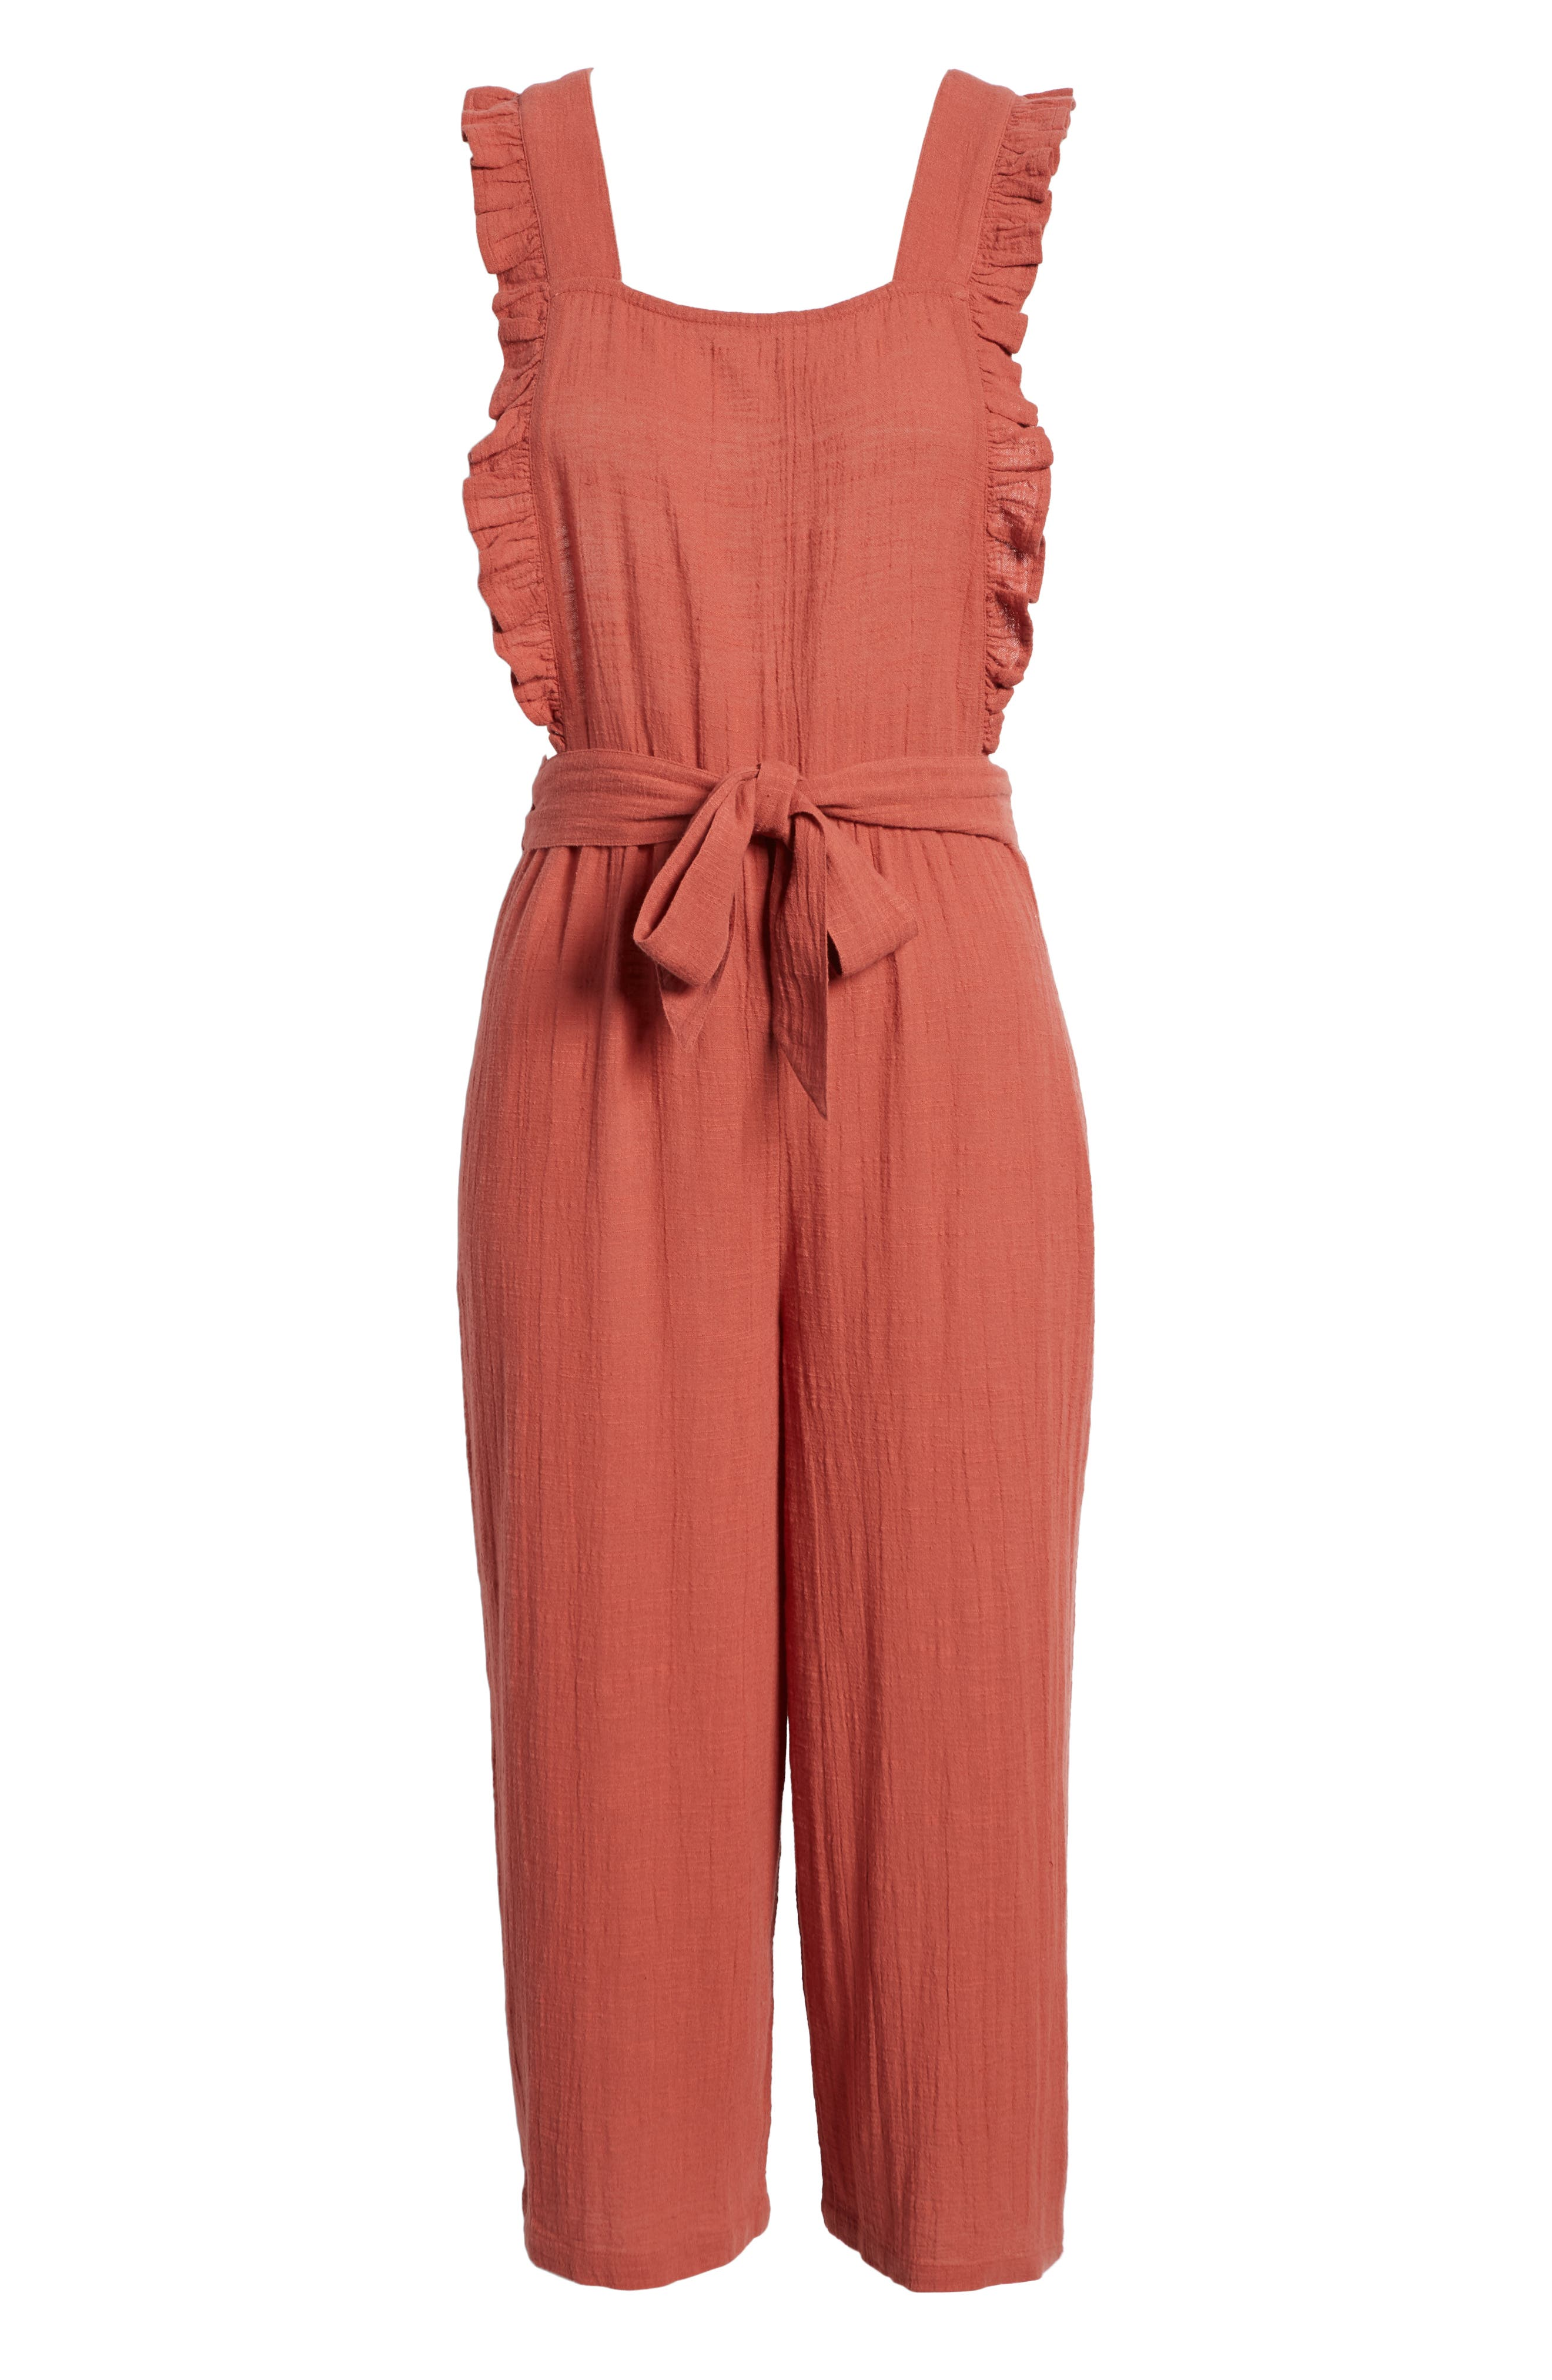 TOPSHOP, Frill Crop Jumpsuit, Alternate thumbnail 7, color, 220